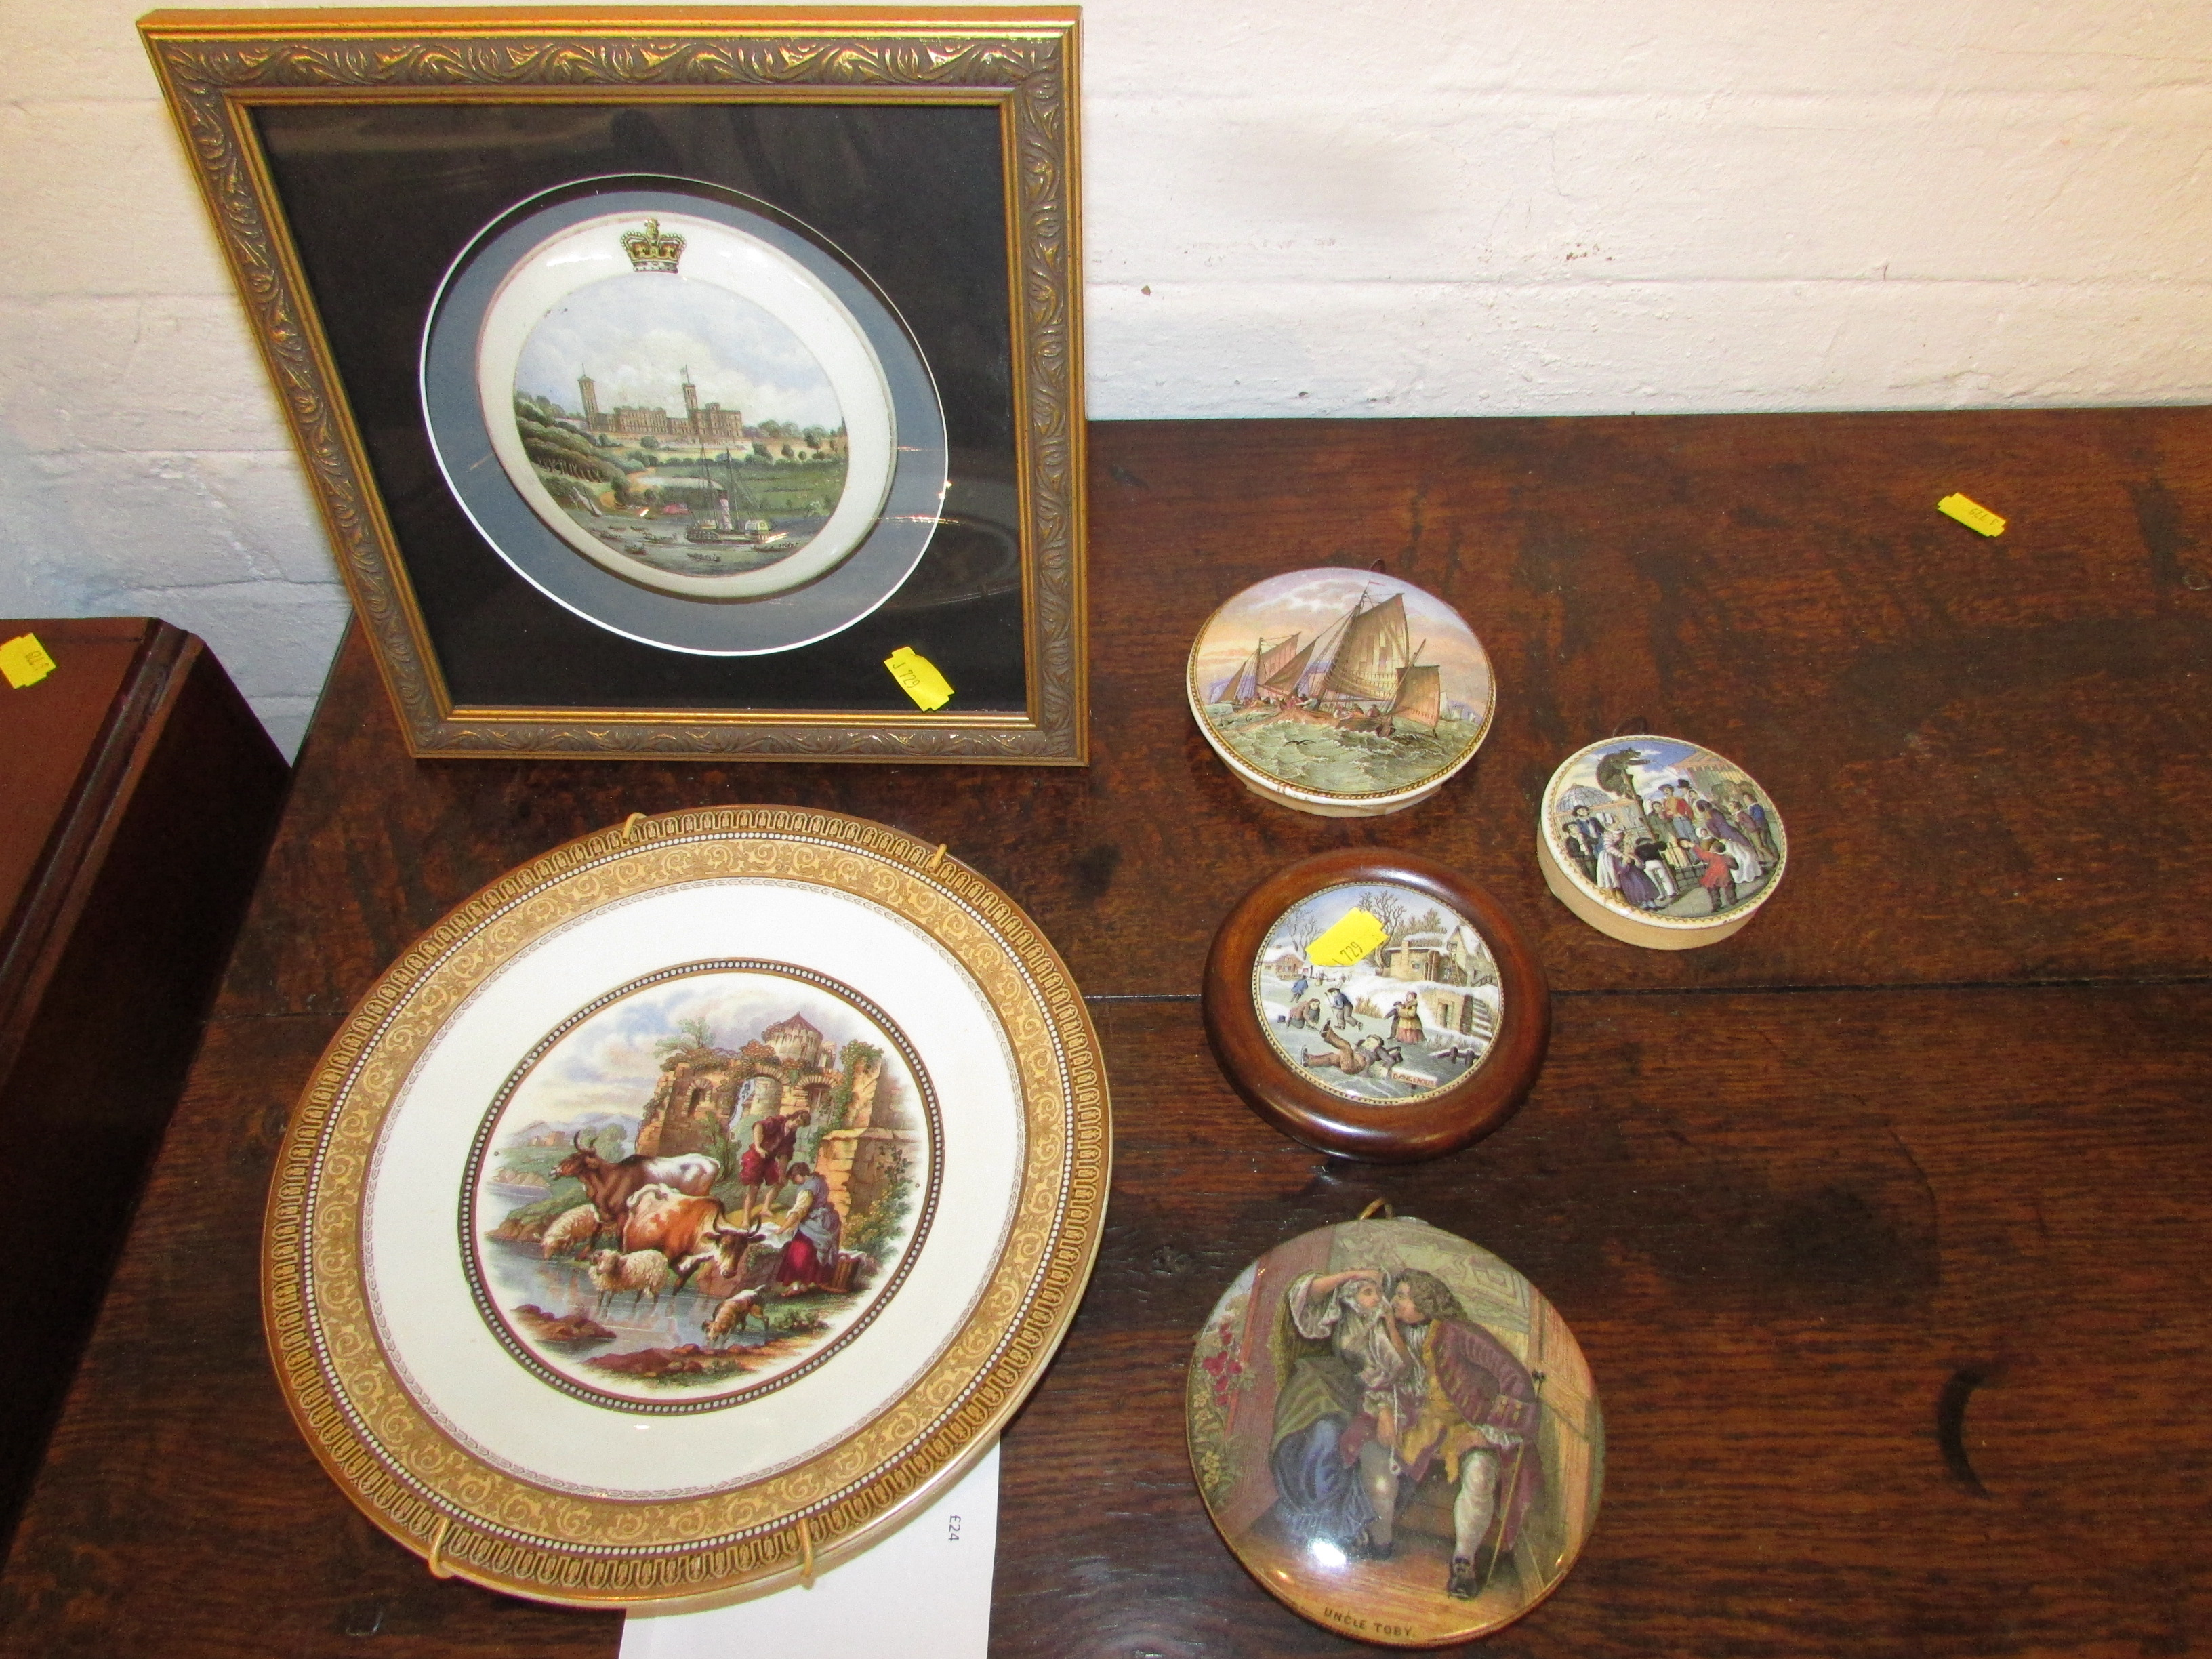 Lot 56 - A Pratt pot lid showing Royal Palace with paddle steamer to foreground with crown to the rim set